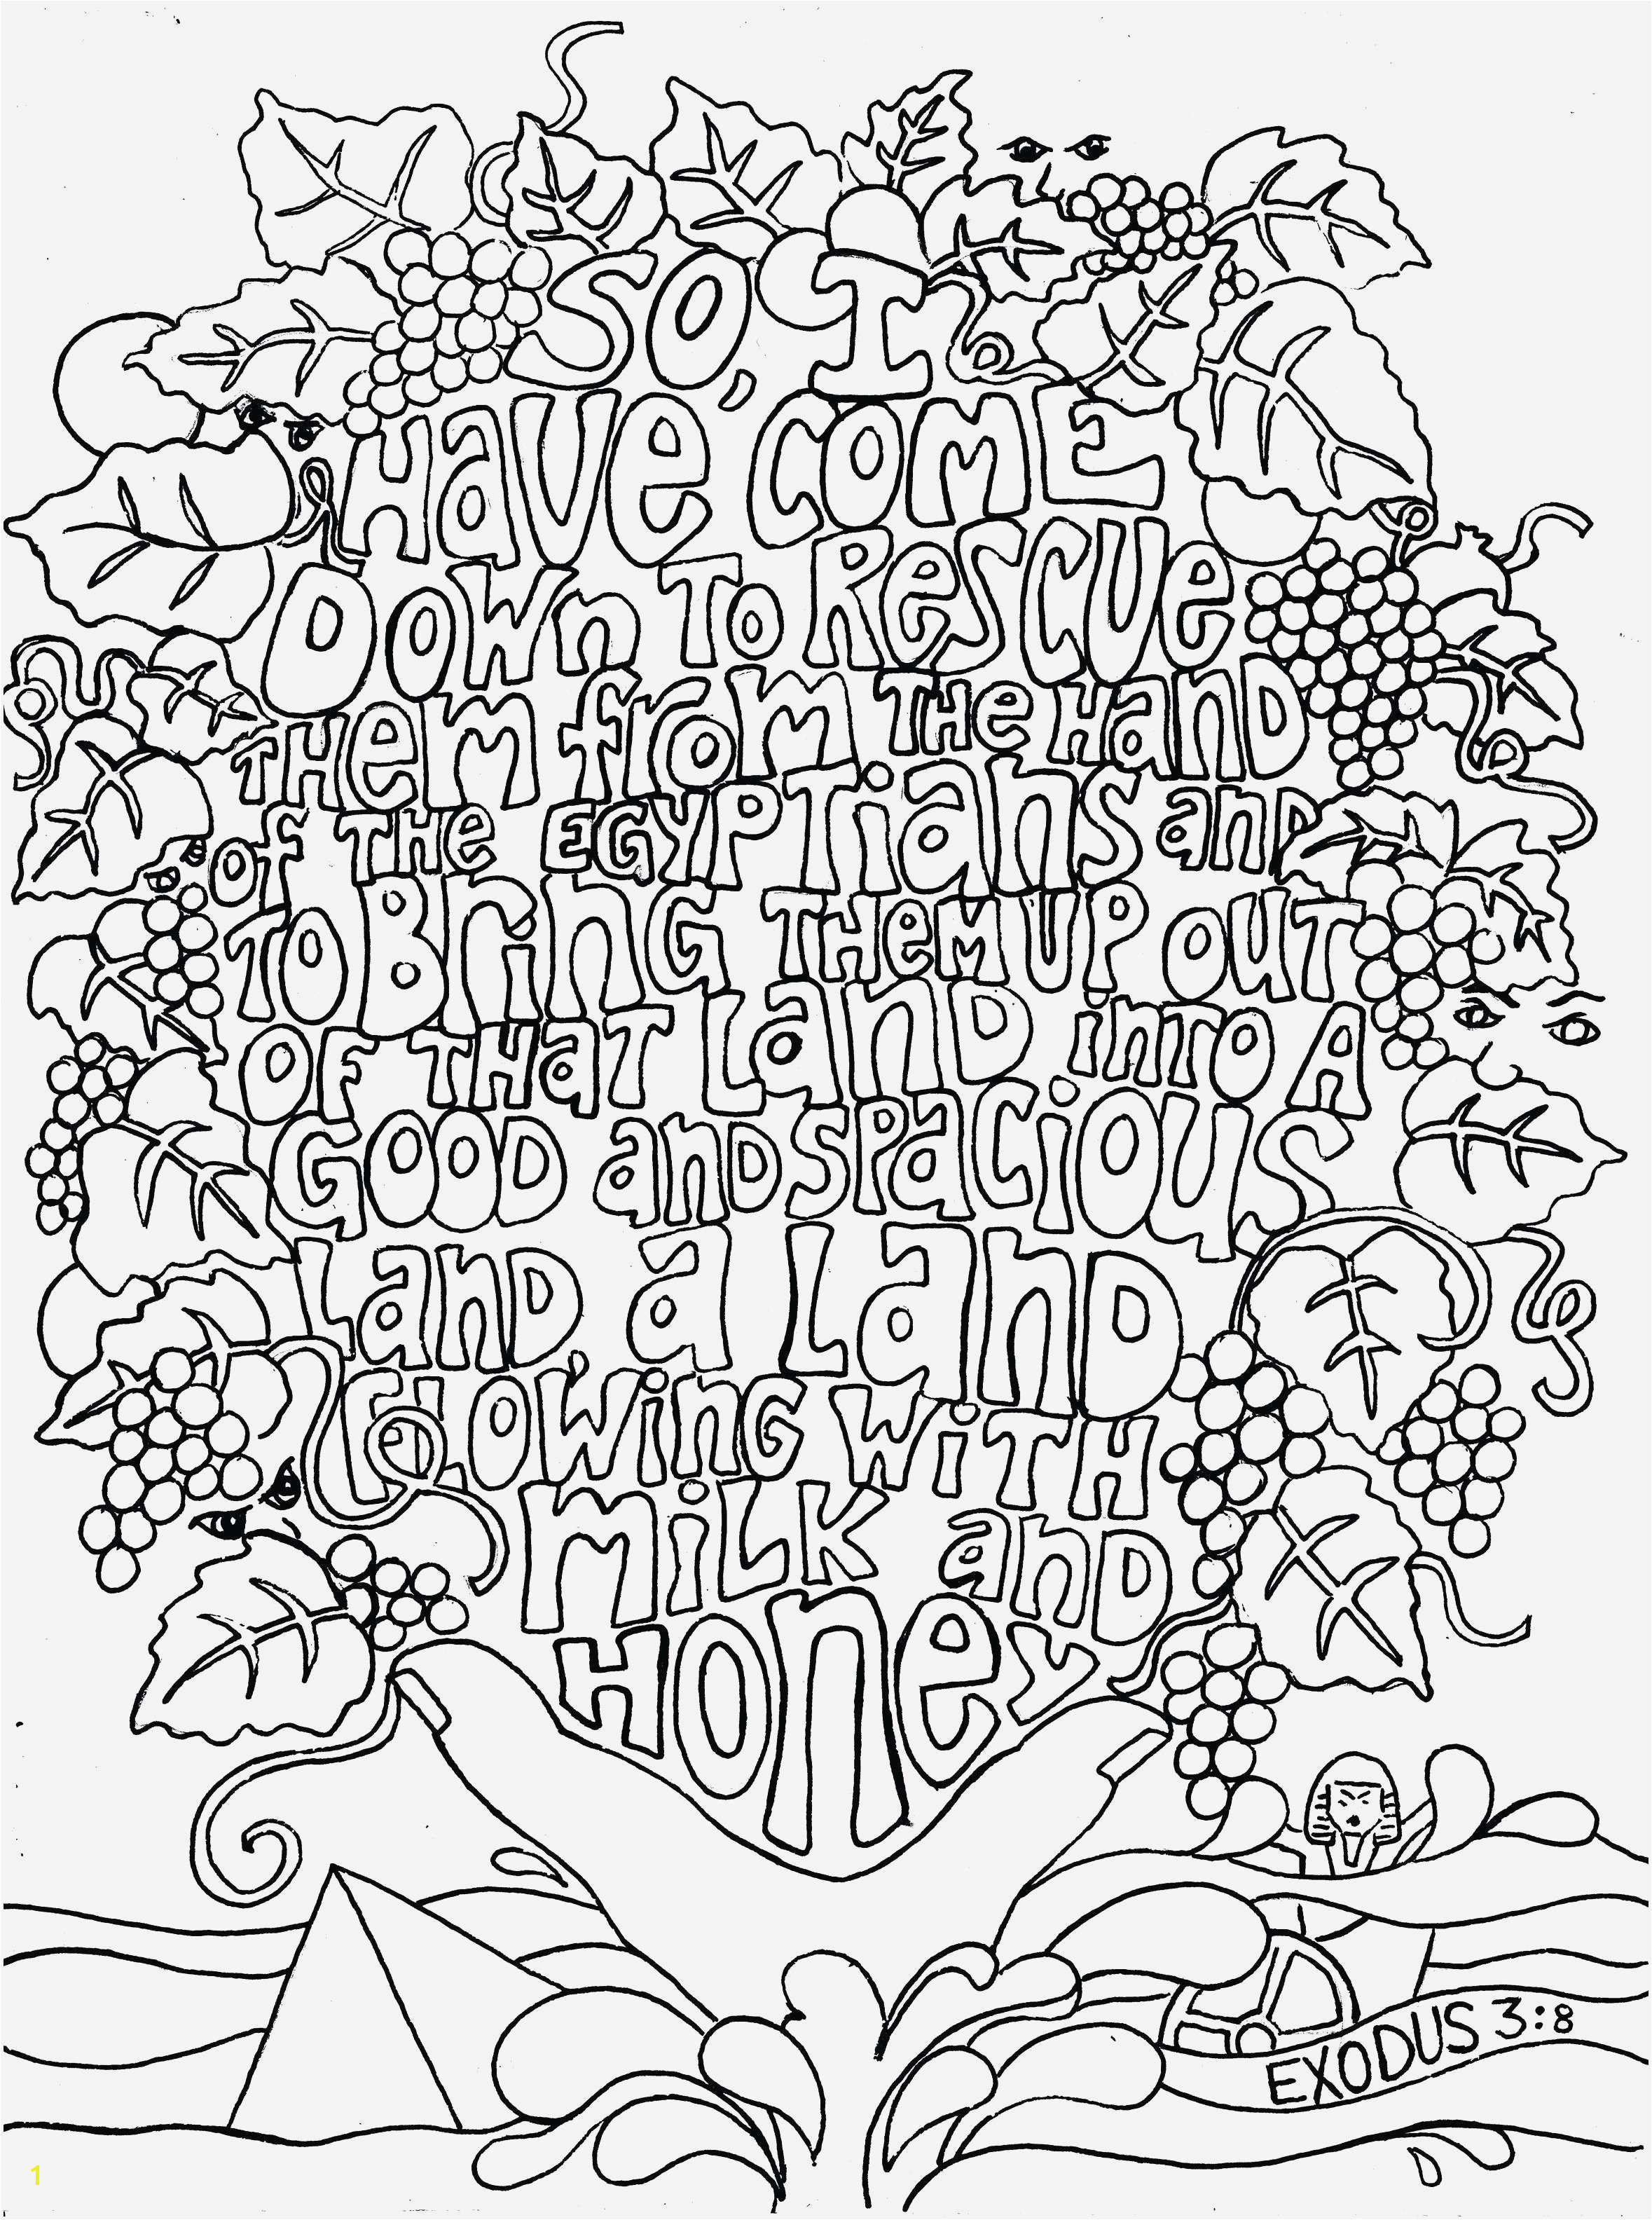 bible verse coloring pages for adults Free Printable Bible Coloring Pages Free Printable Bible Coloring